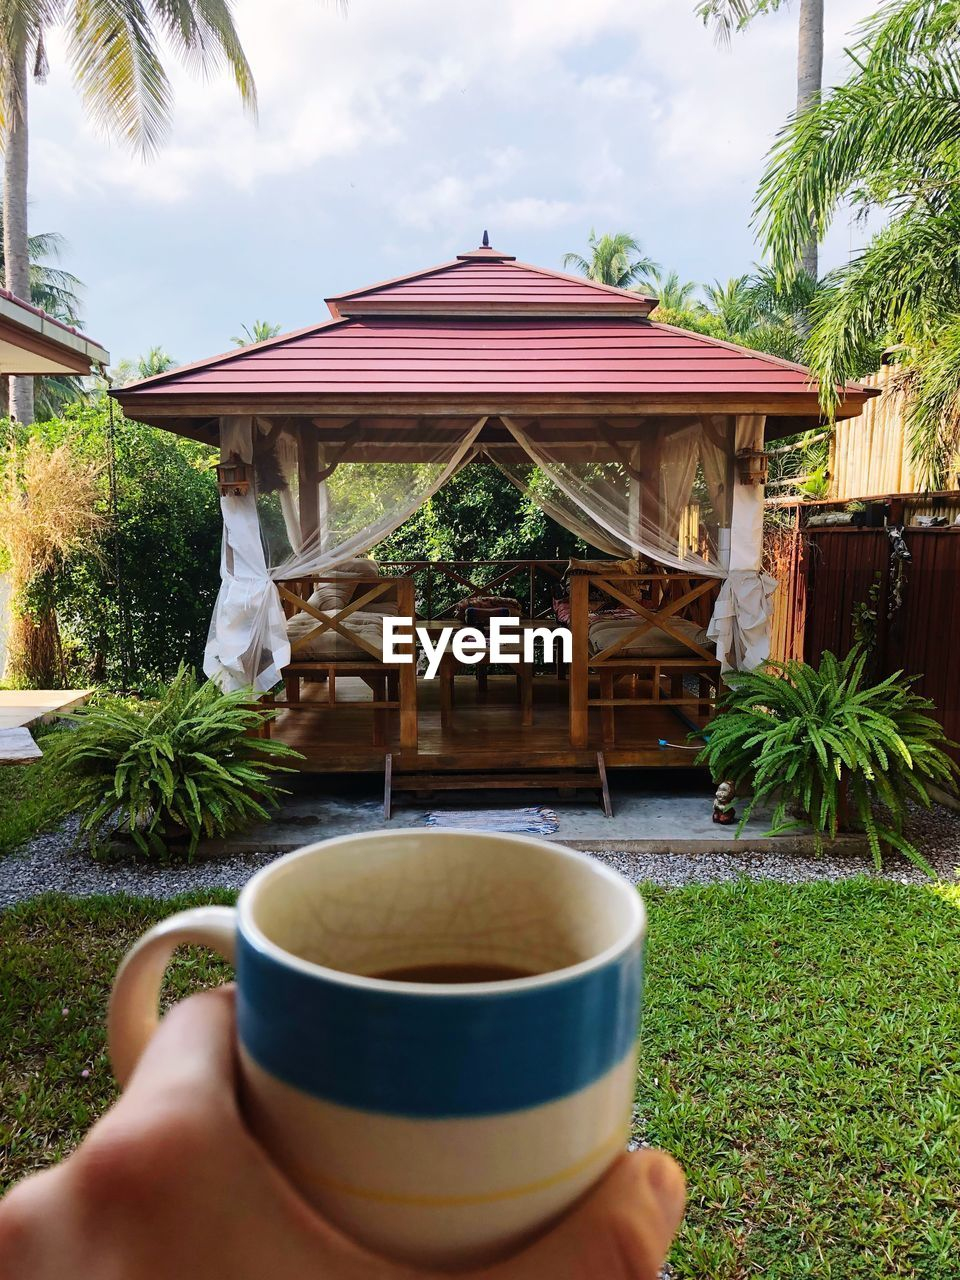 drink, refreshment, human hand, food and drink, one person, plant, human body part, cup, real people, hand, tree, nature, holding, mug, architecture, day, unrecognizable person, lifestyles, leisure activity, hot drink, outdoors